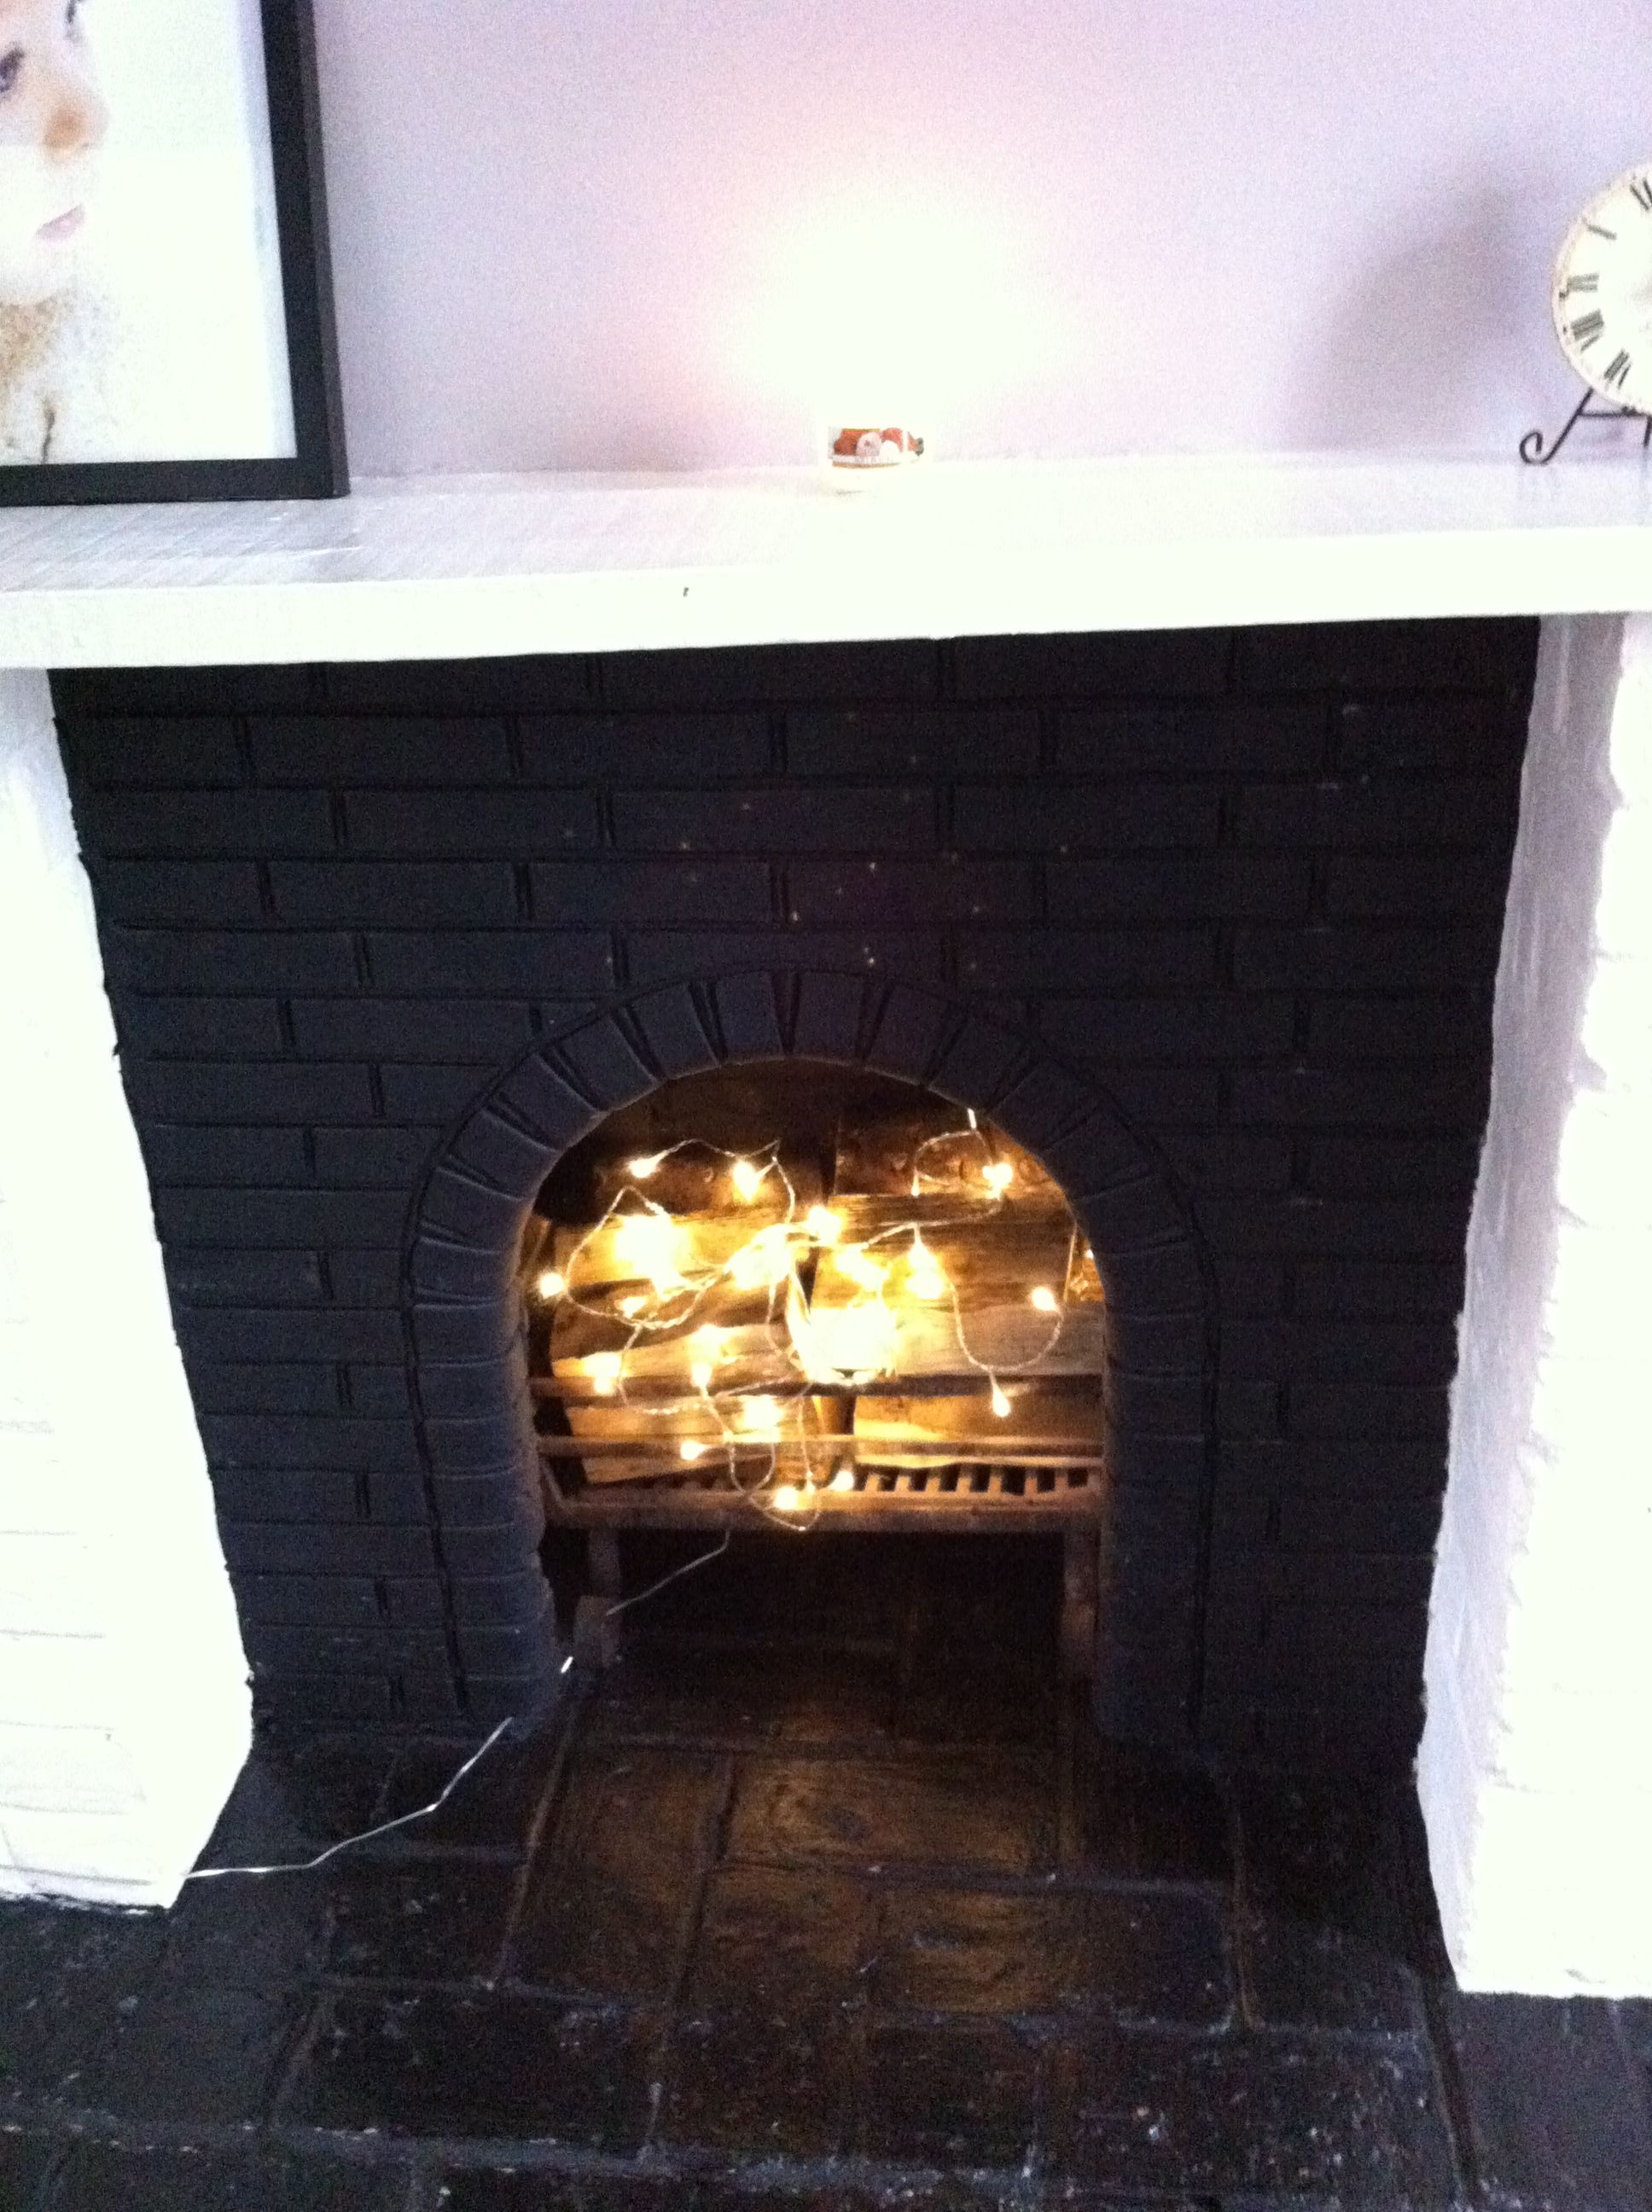 Fairylights Used In The Fireplace When Fire Isn T Needed Gorgeous Idea